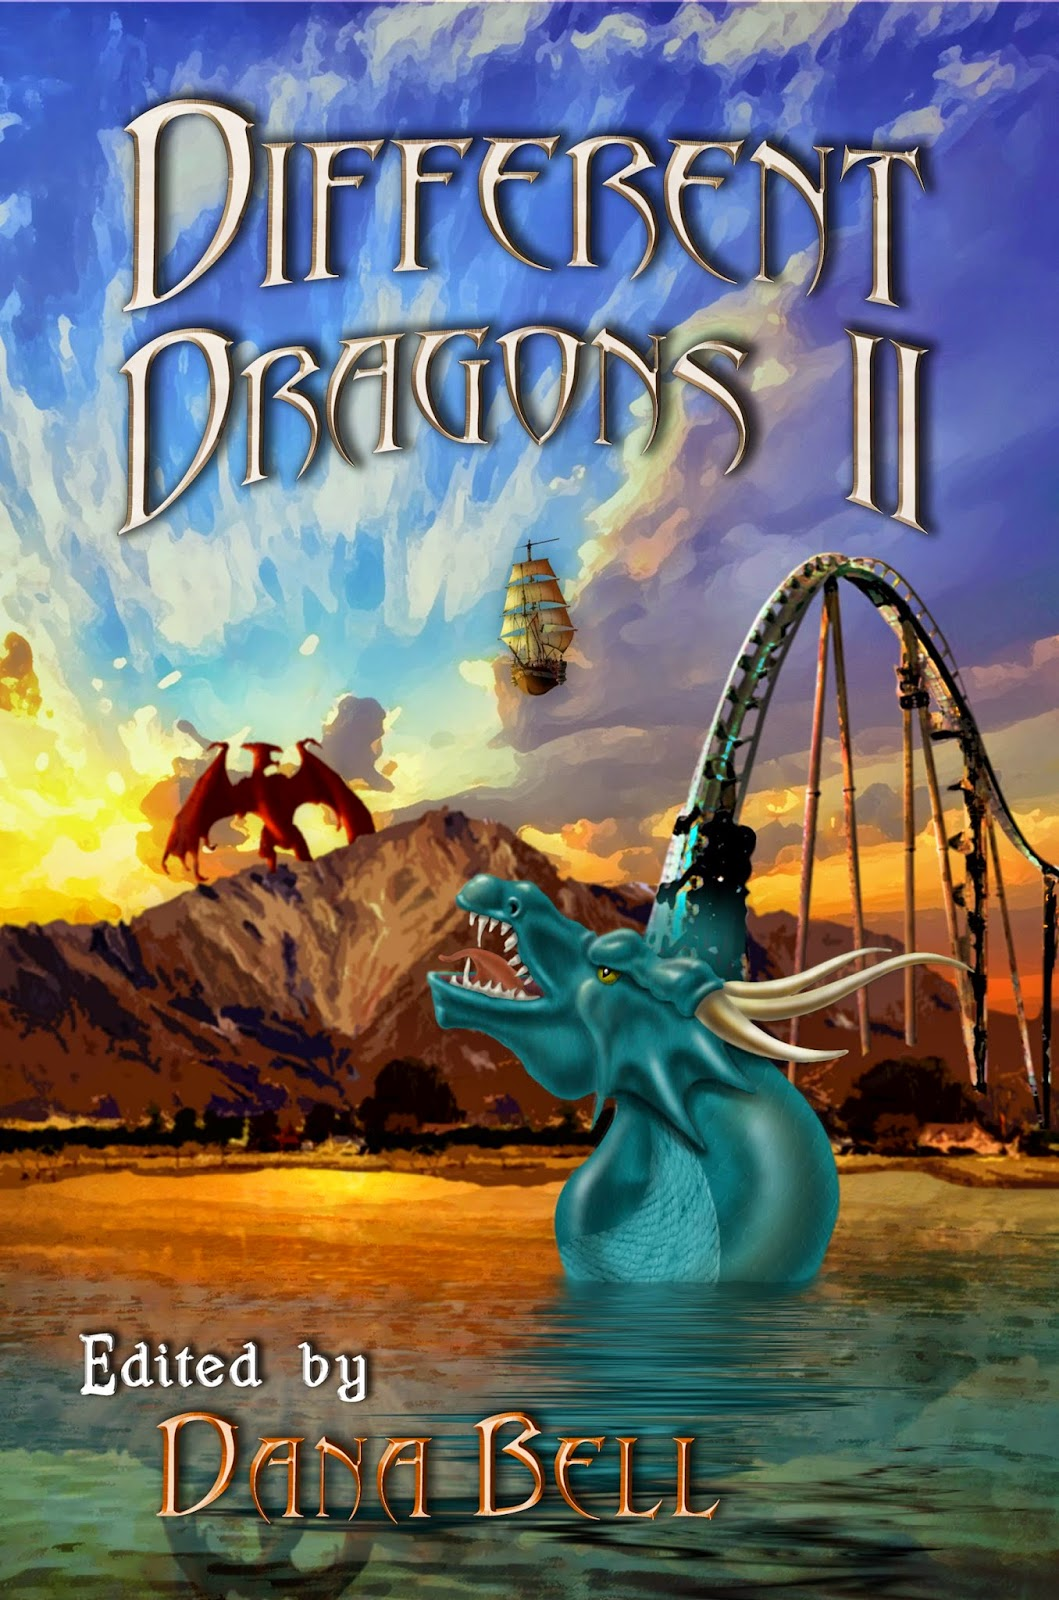 New Release: Different Dragons II